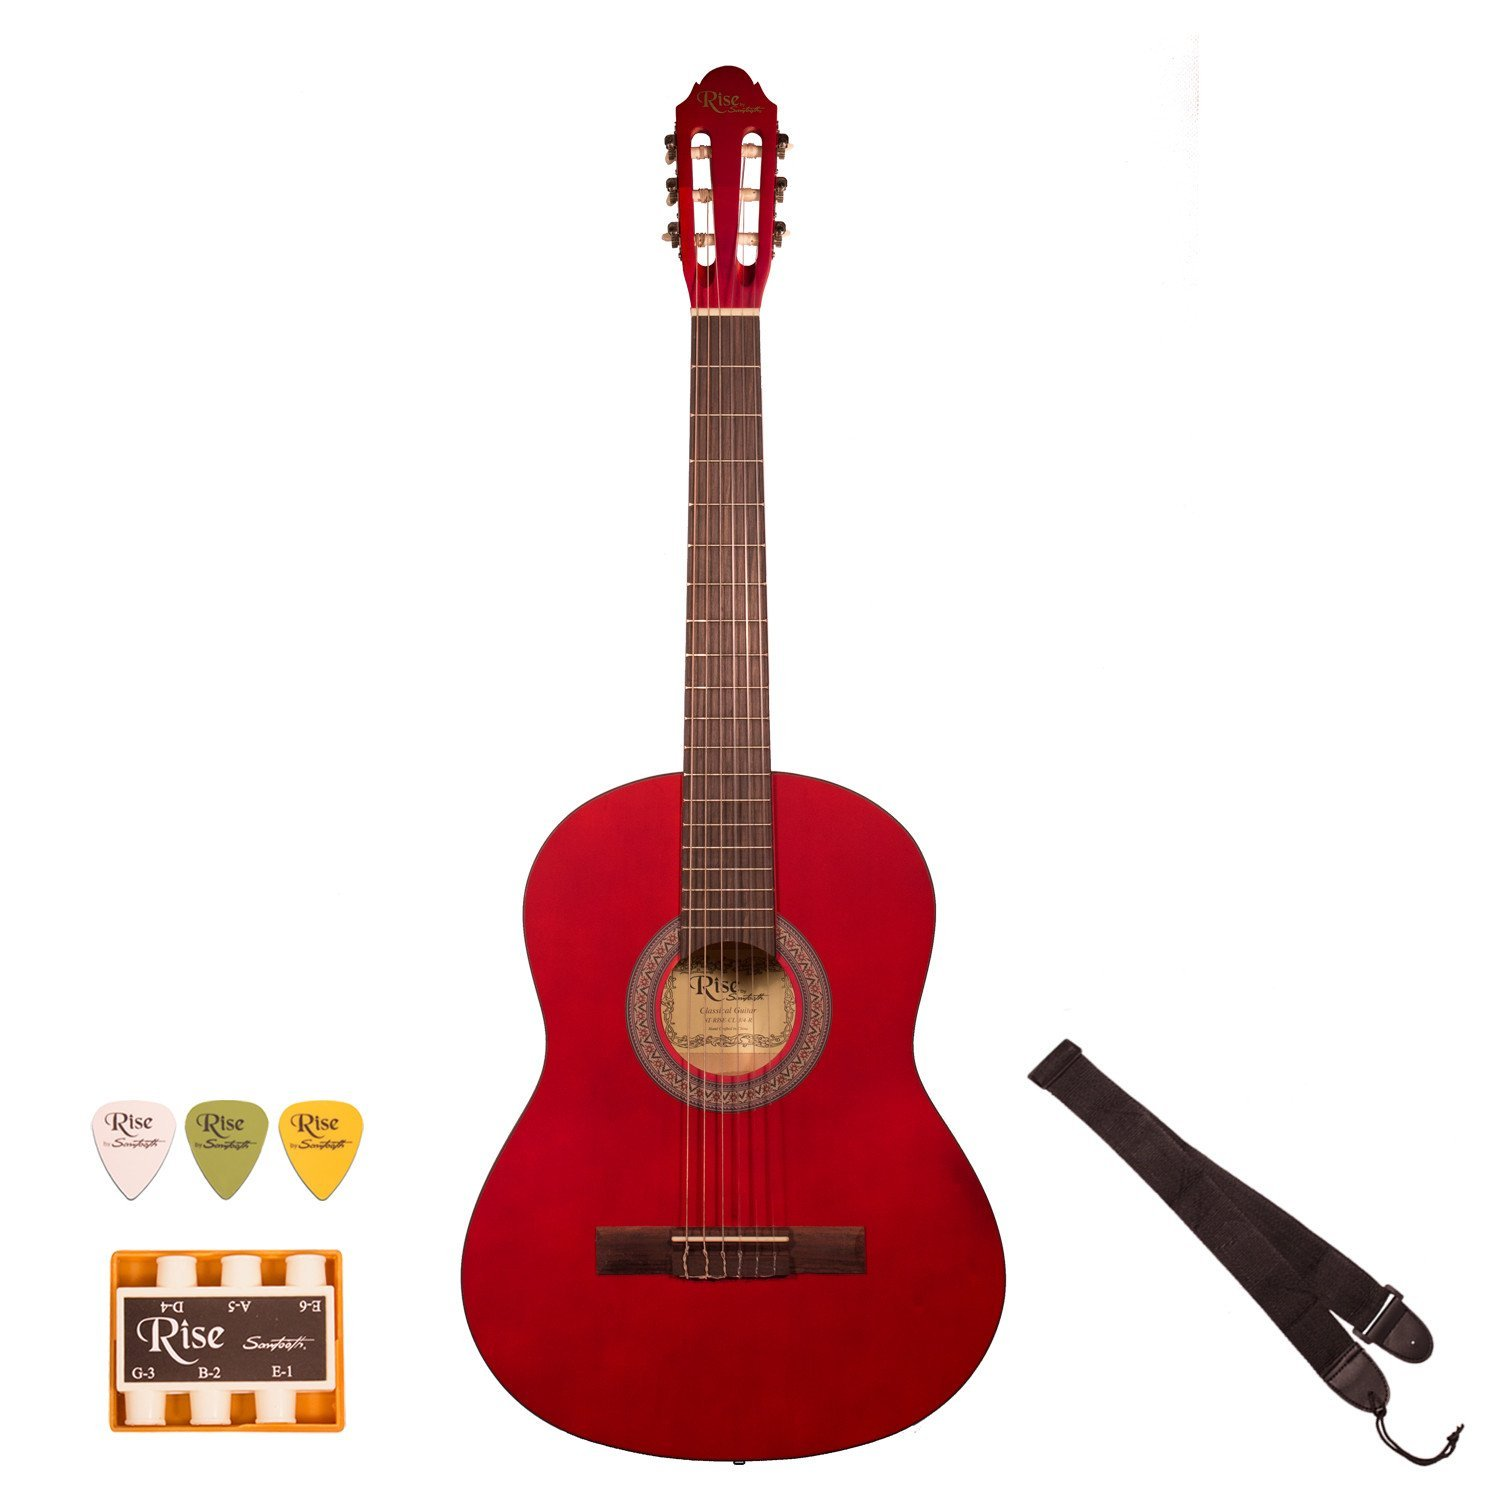 Rise by Sawtooth 3 4 Size Beginner's Acoustic Guitar with Accessories, Satin Gold Stain by Sawtooth